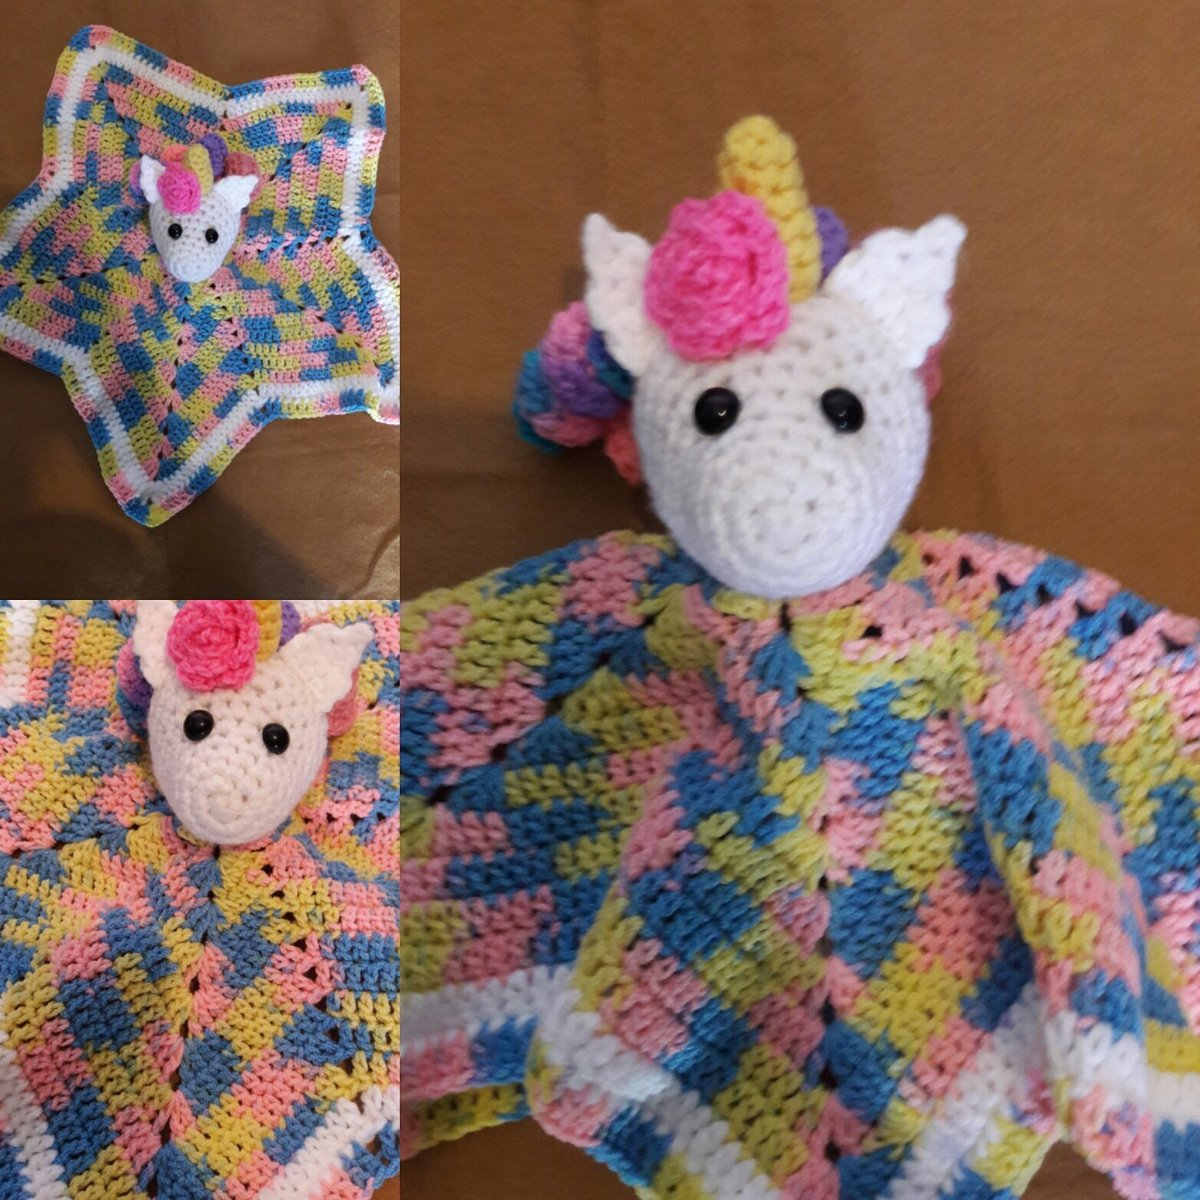 zebra crochet pattern unicorn crochet pattern by SweetOddityArt ... | 1200x1200